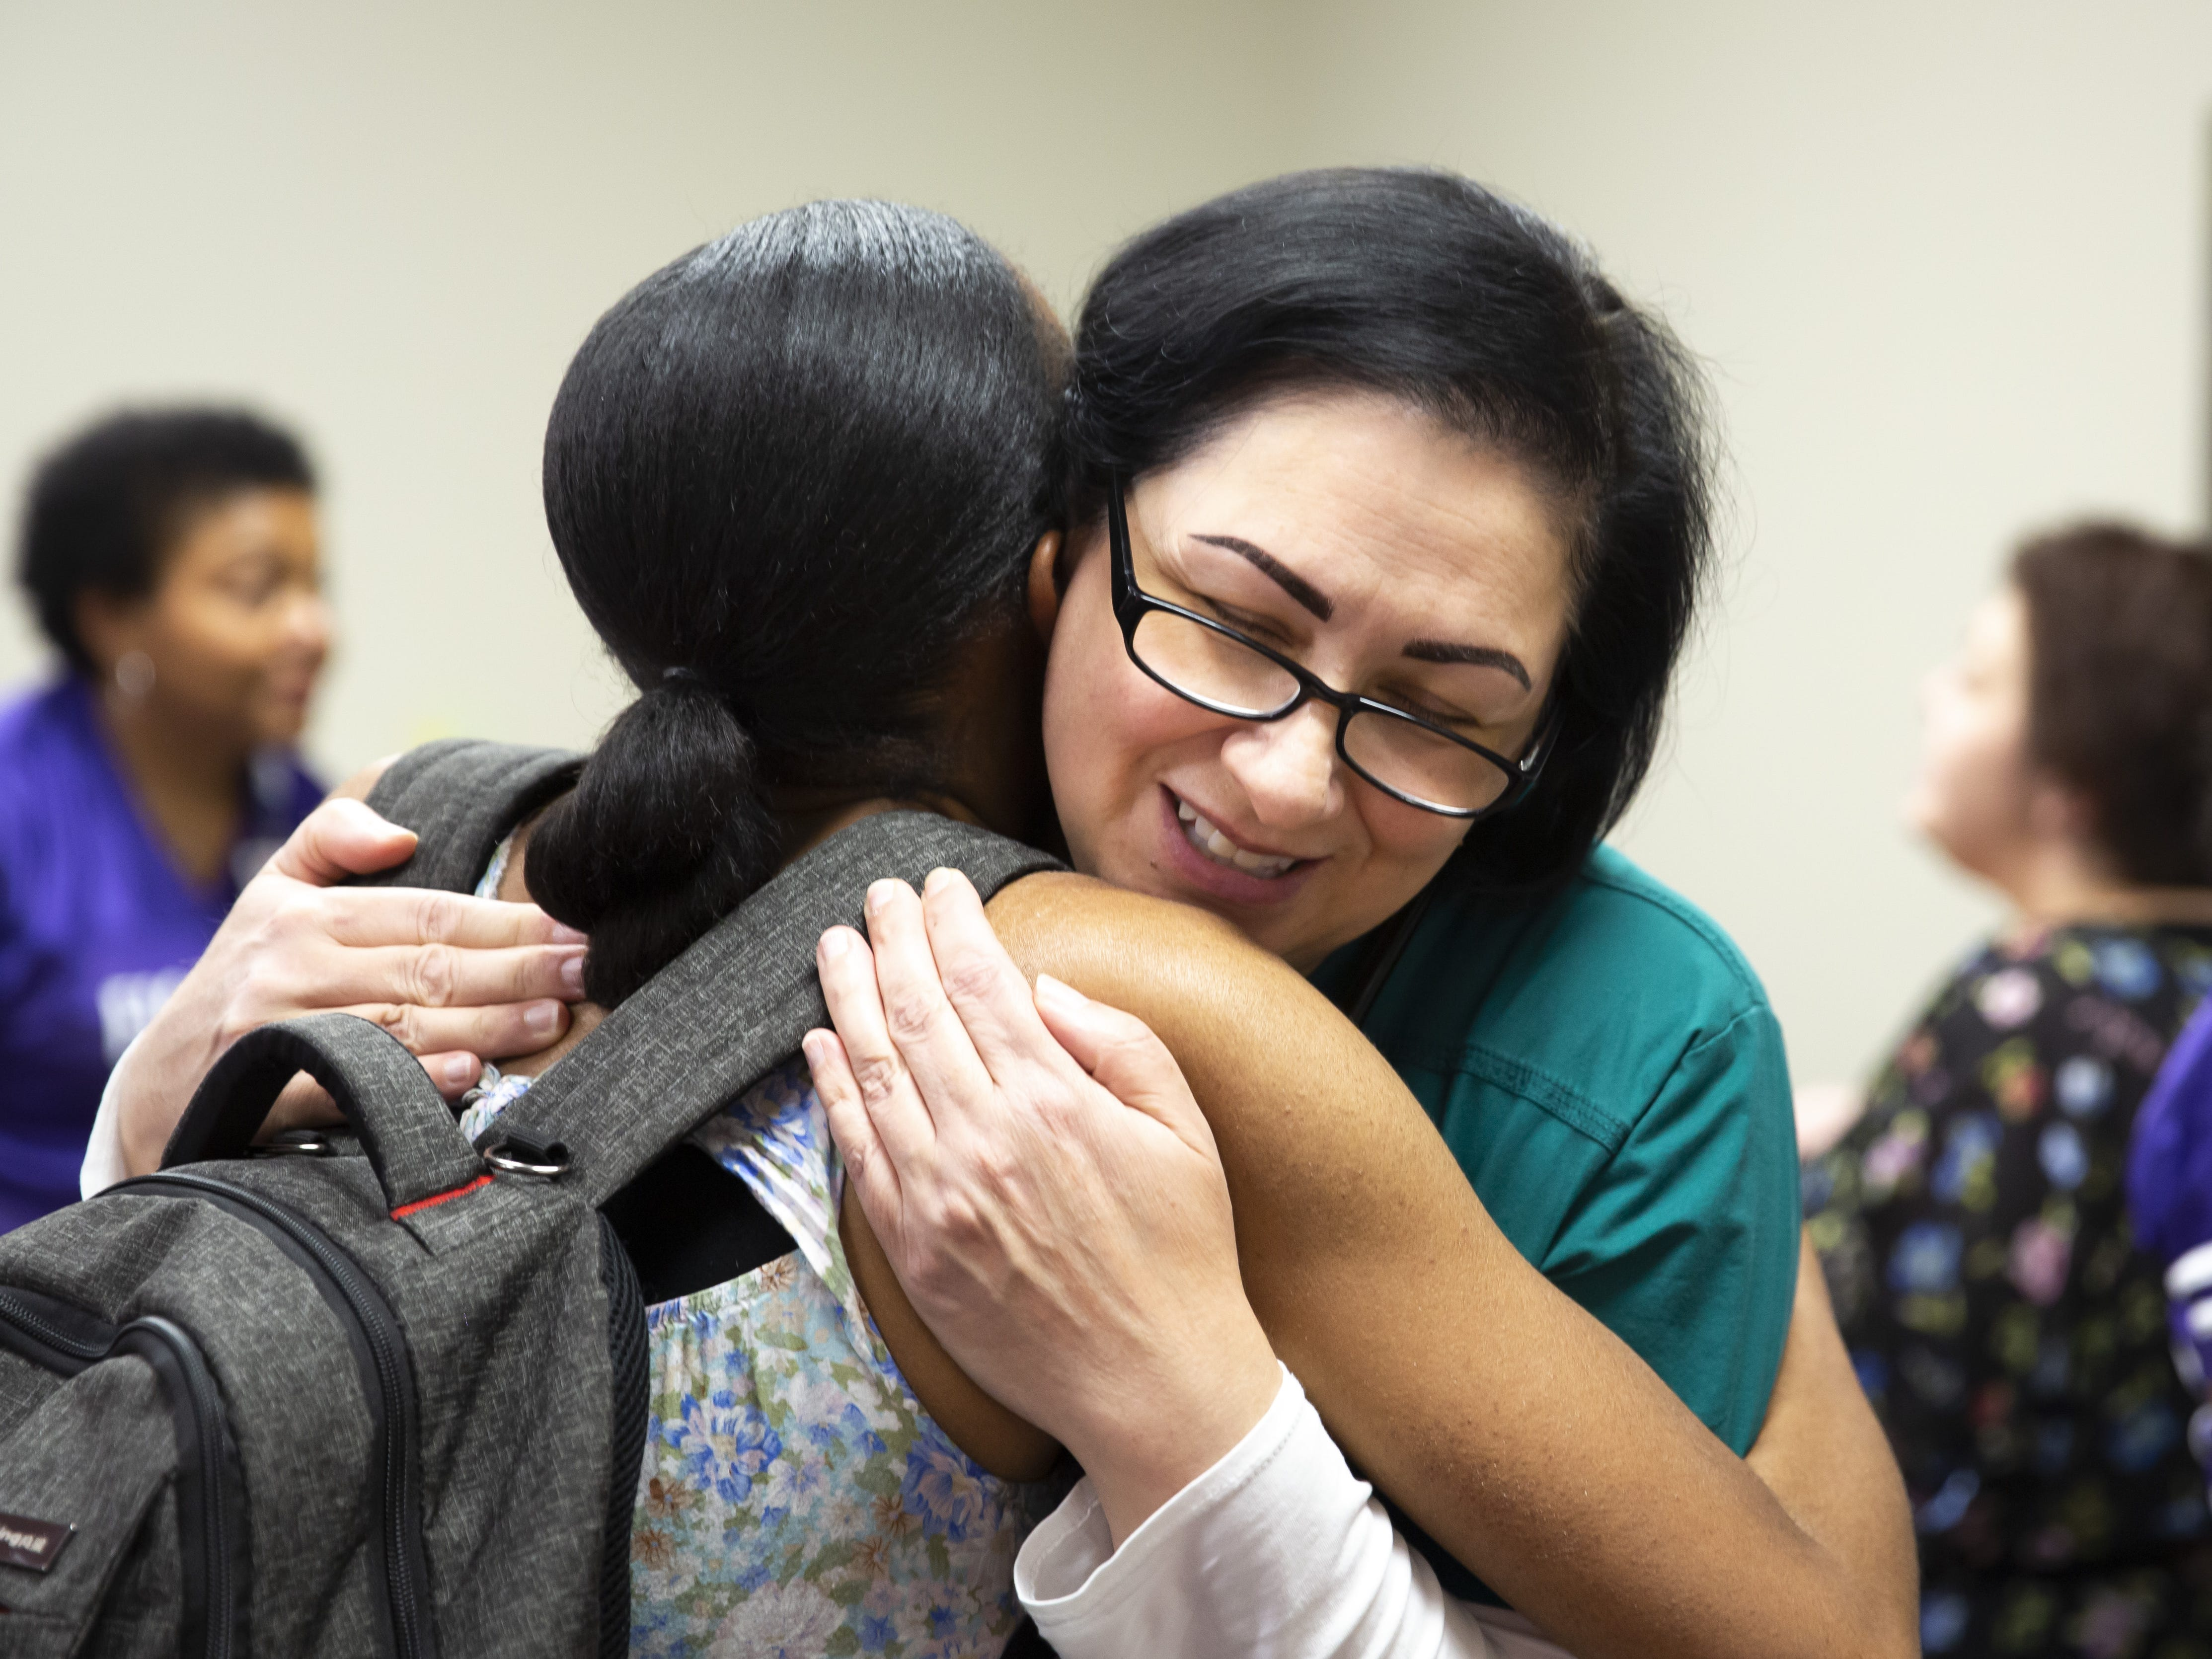 Respiratory therapist Deb Hall hugs Shay Craig, a mother of quadruplets, at the Preemie NICU Reunion at Banner University Medical Center on April 13, 2019.